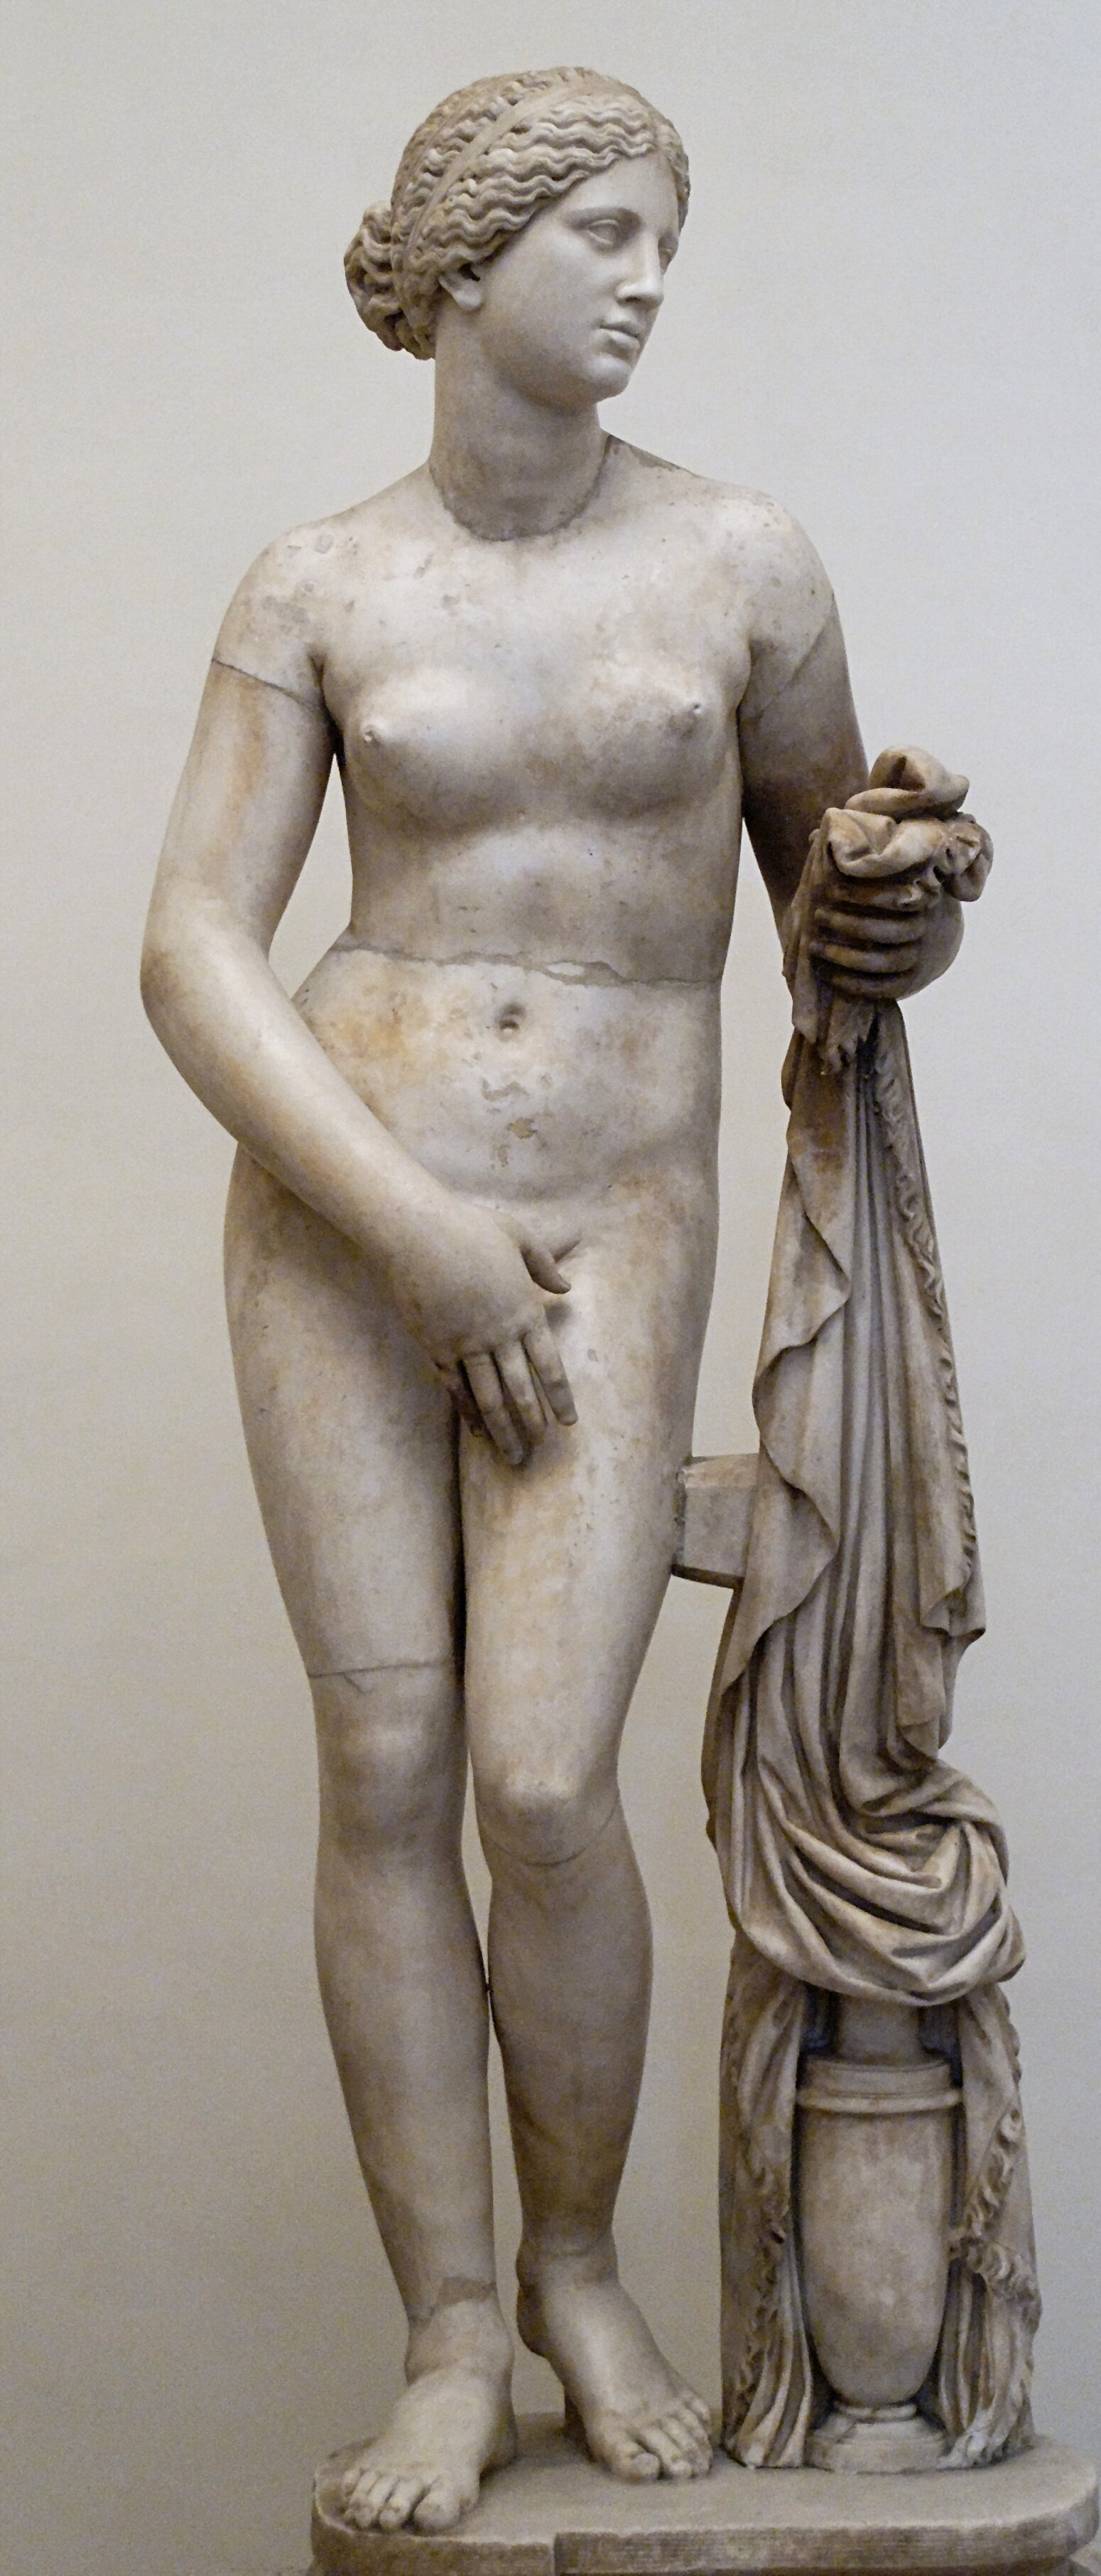 i've plucked more than just my unwanted facial hair. - Aphrodite of Cnidus by Praxiteles of Athens, Wikicommons.